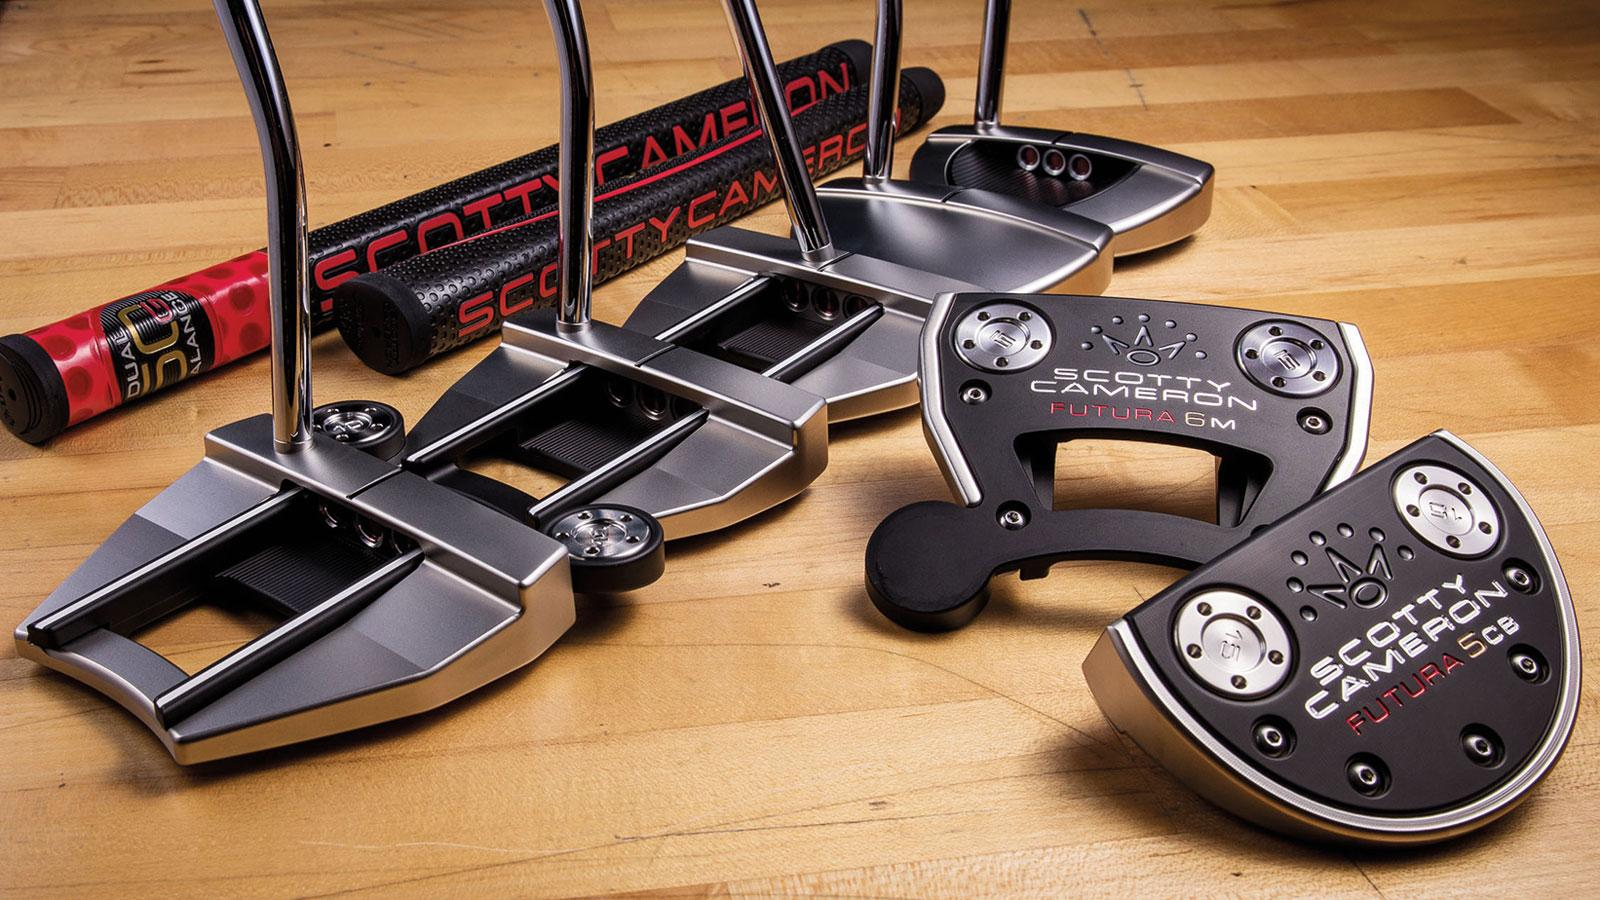 The Scotty Cameron Futura.